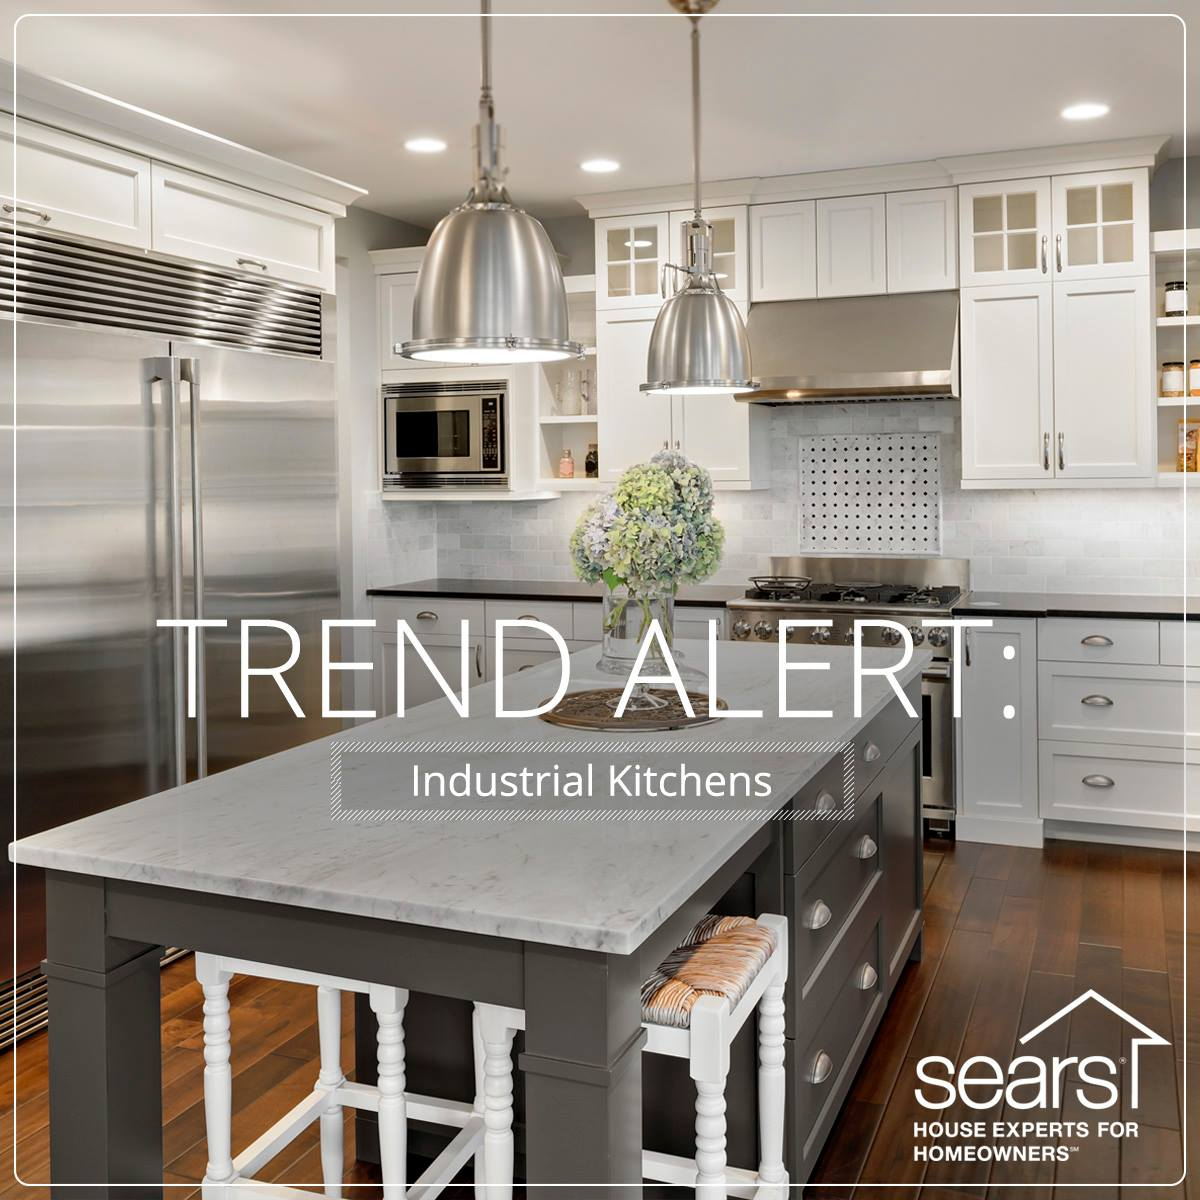 Build Your Dream Kitchen On A Budget With Sears Home Services The - Sears kitchen remodeling